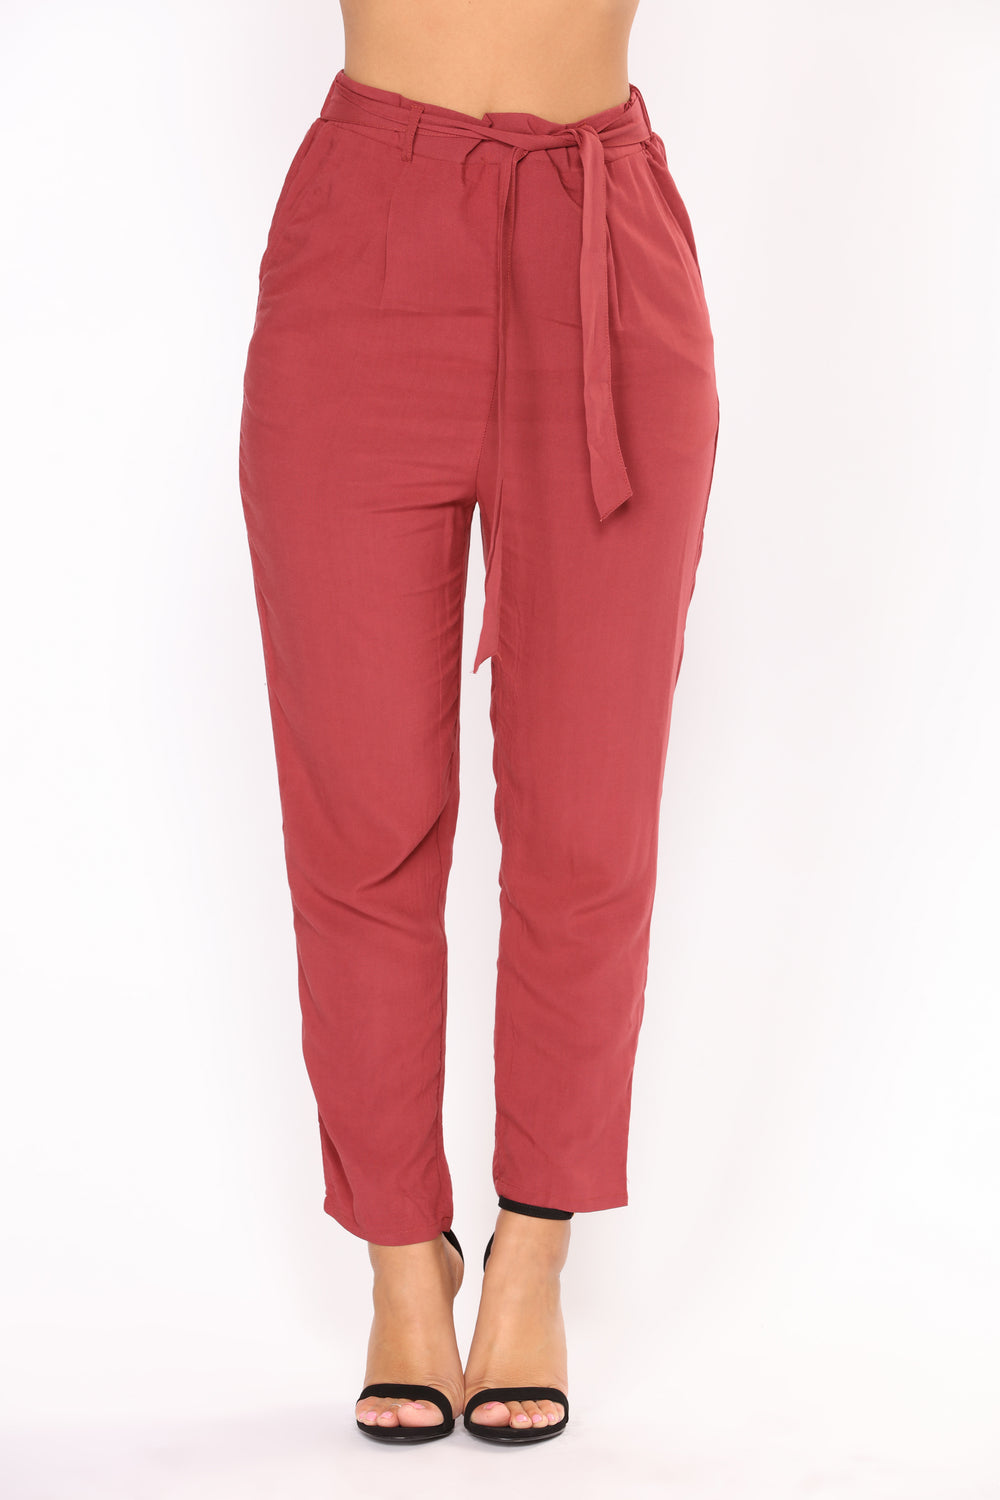 Work It Waist Tie Pants - Marsala